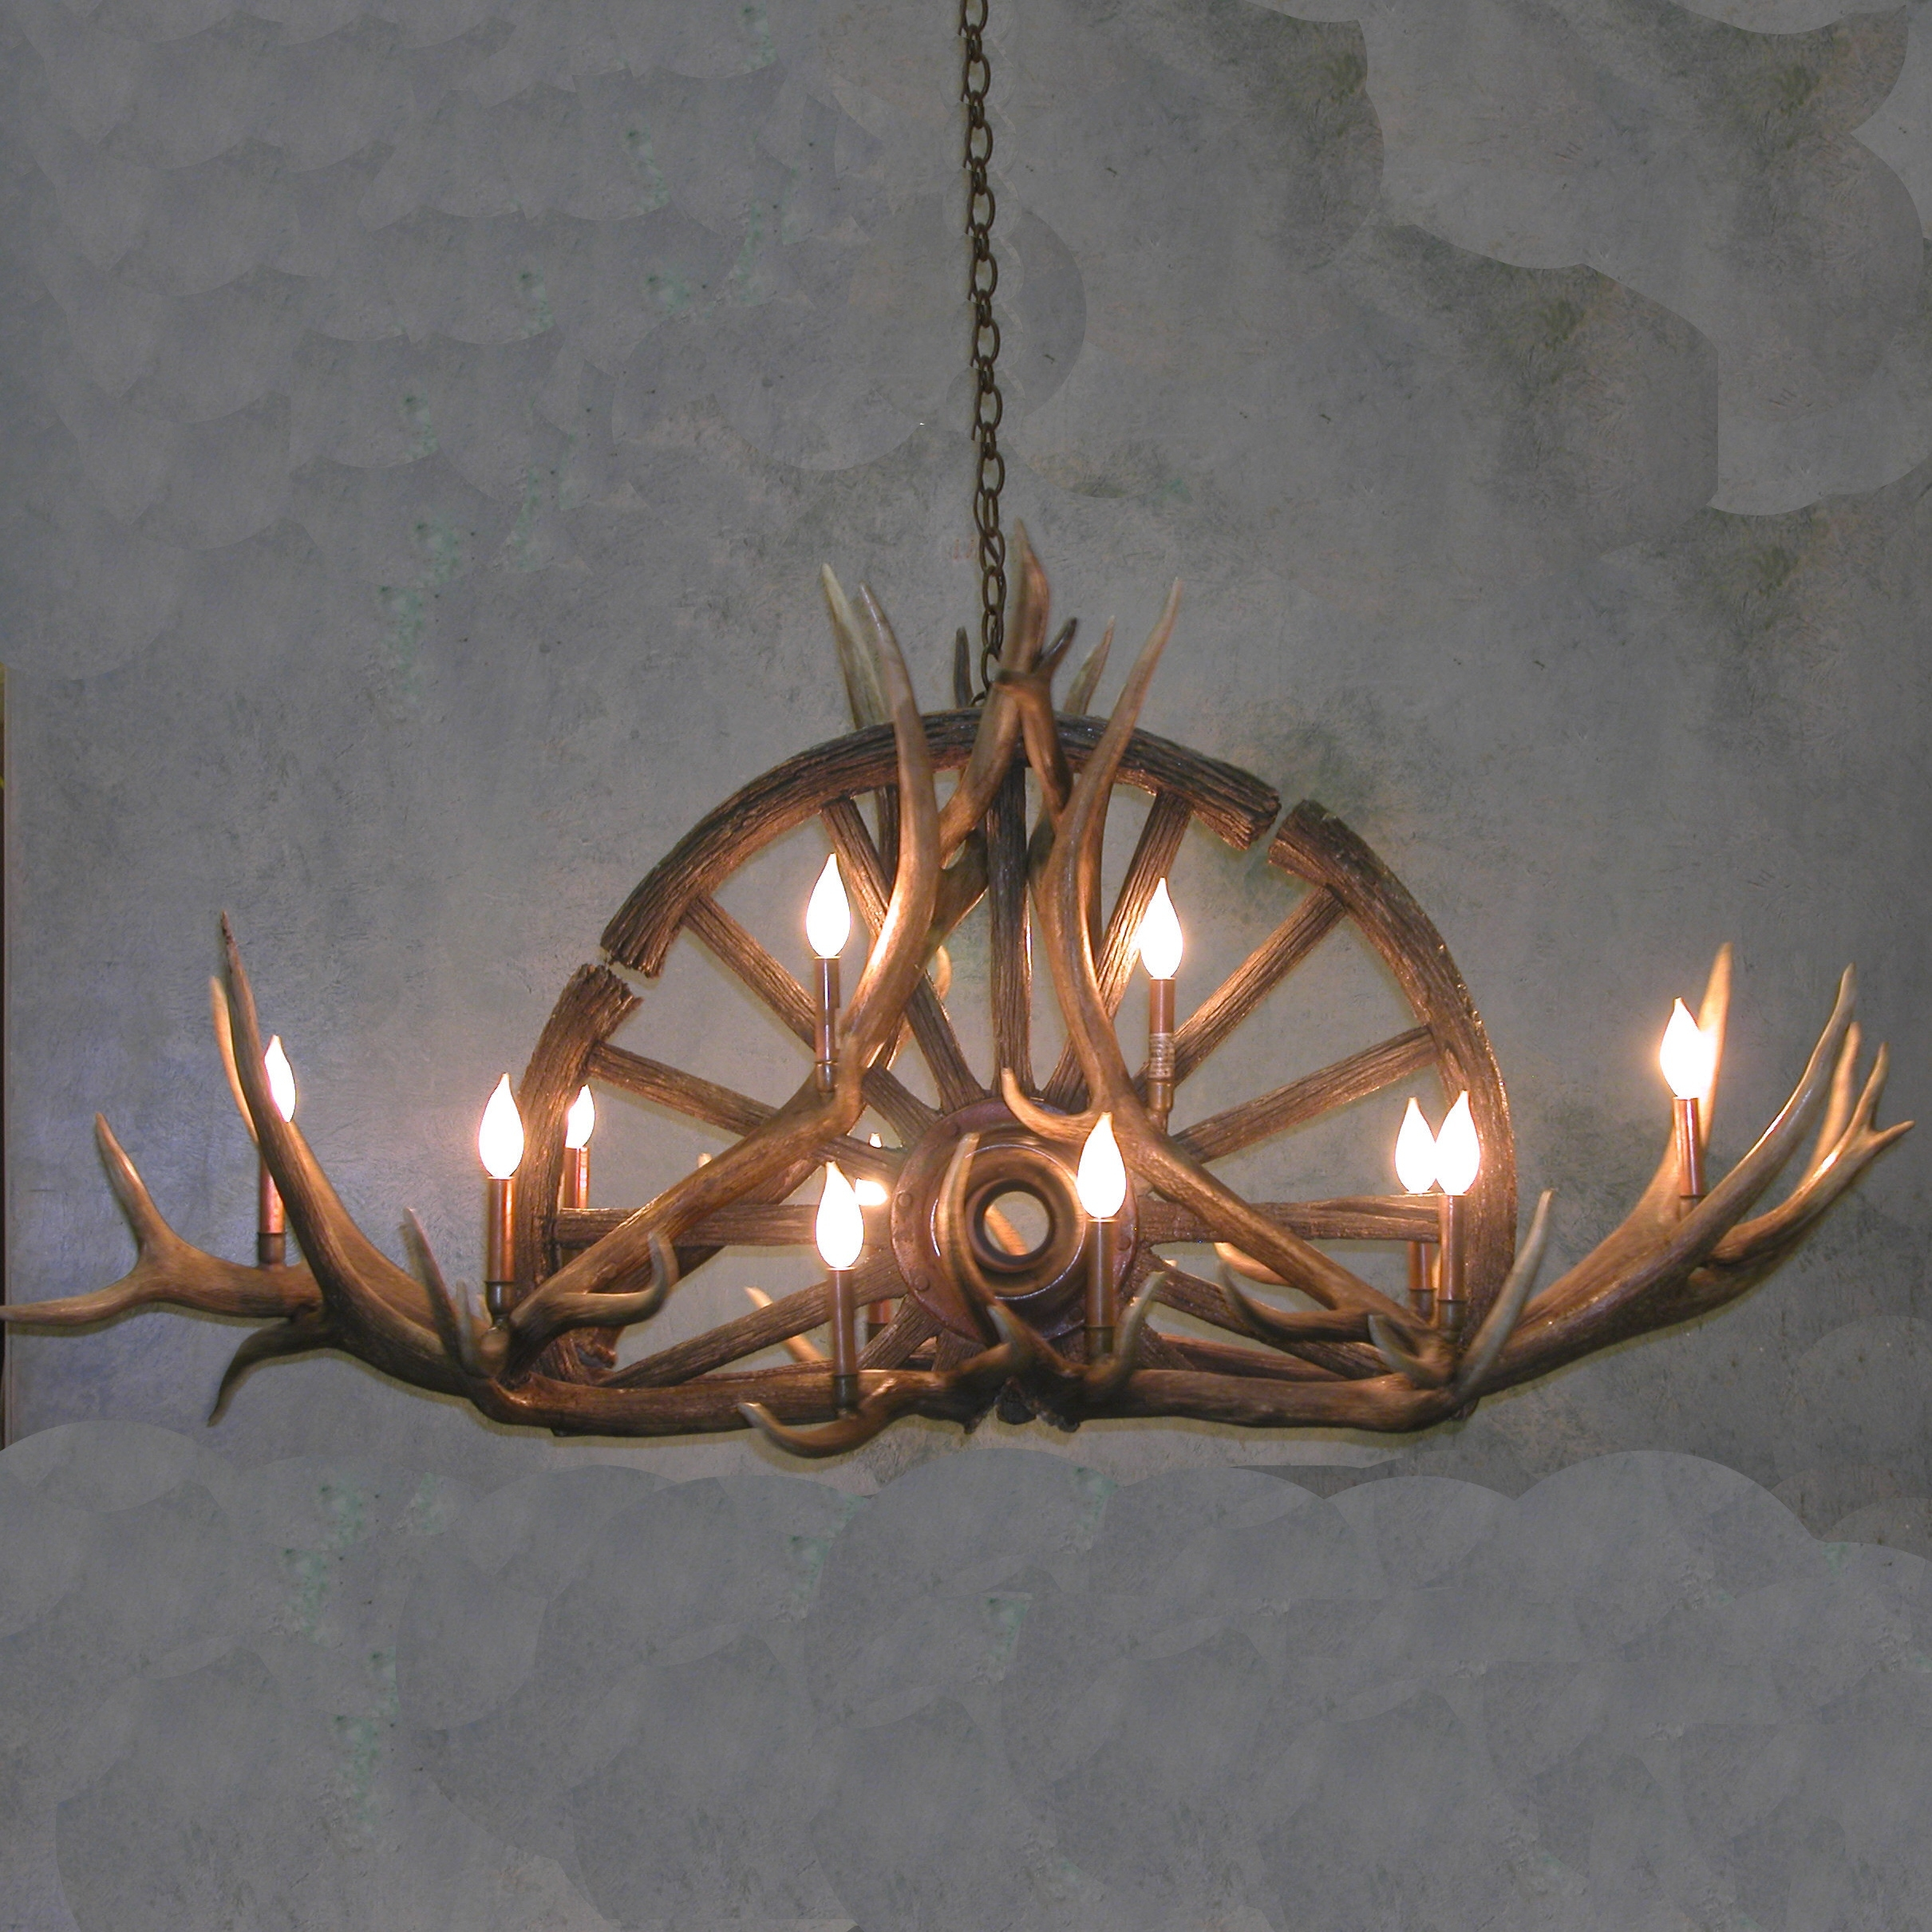 Sundial Wagon Wheel Antler Chandelier In Antler Chandelier (Image 10 of 15)